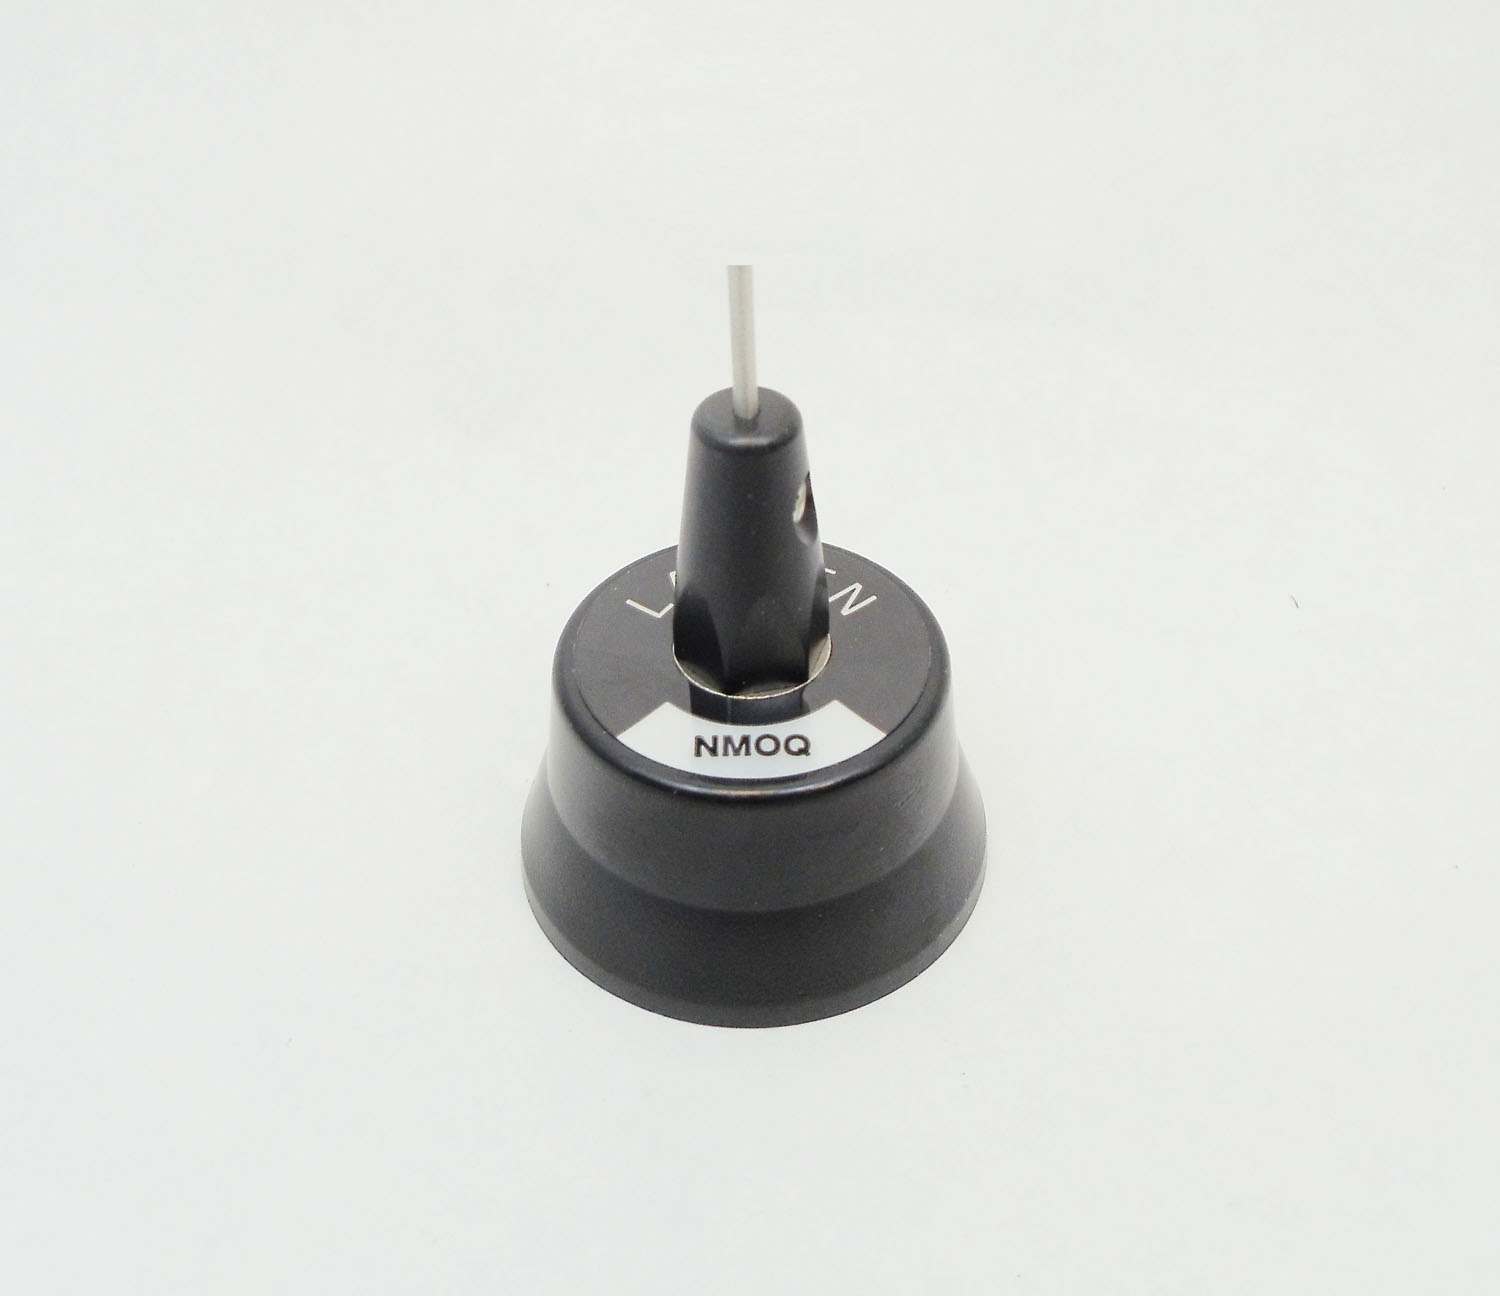 136-512MHZ LOAD AND TIP ONLY (STAINLESS STEEL)